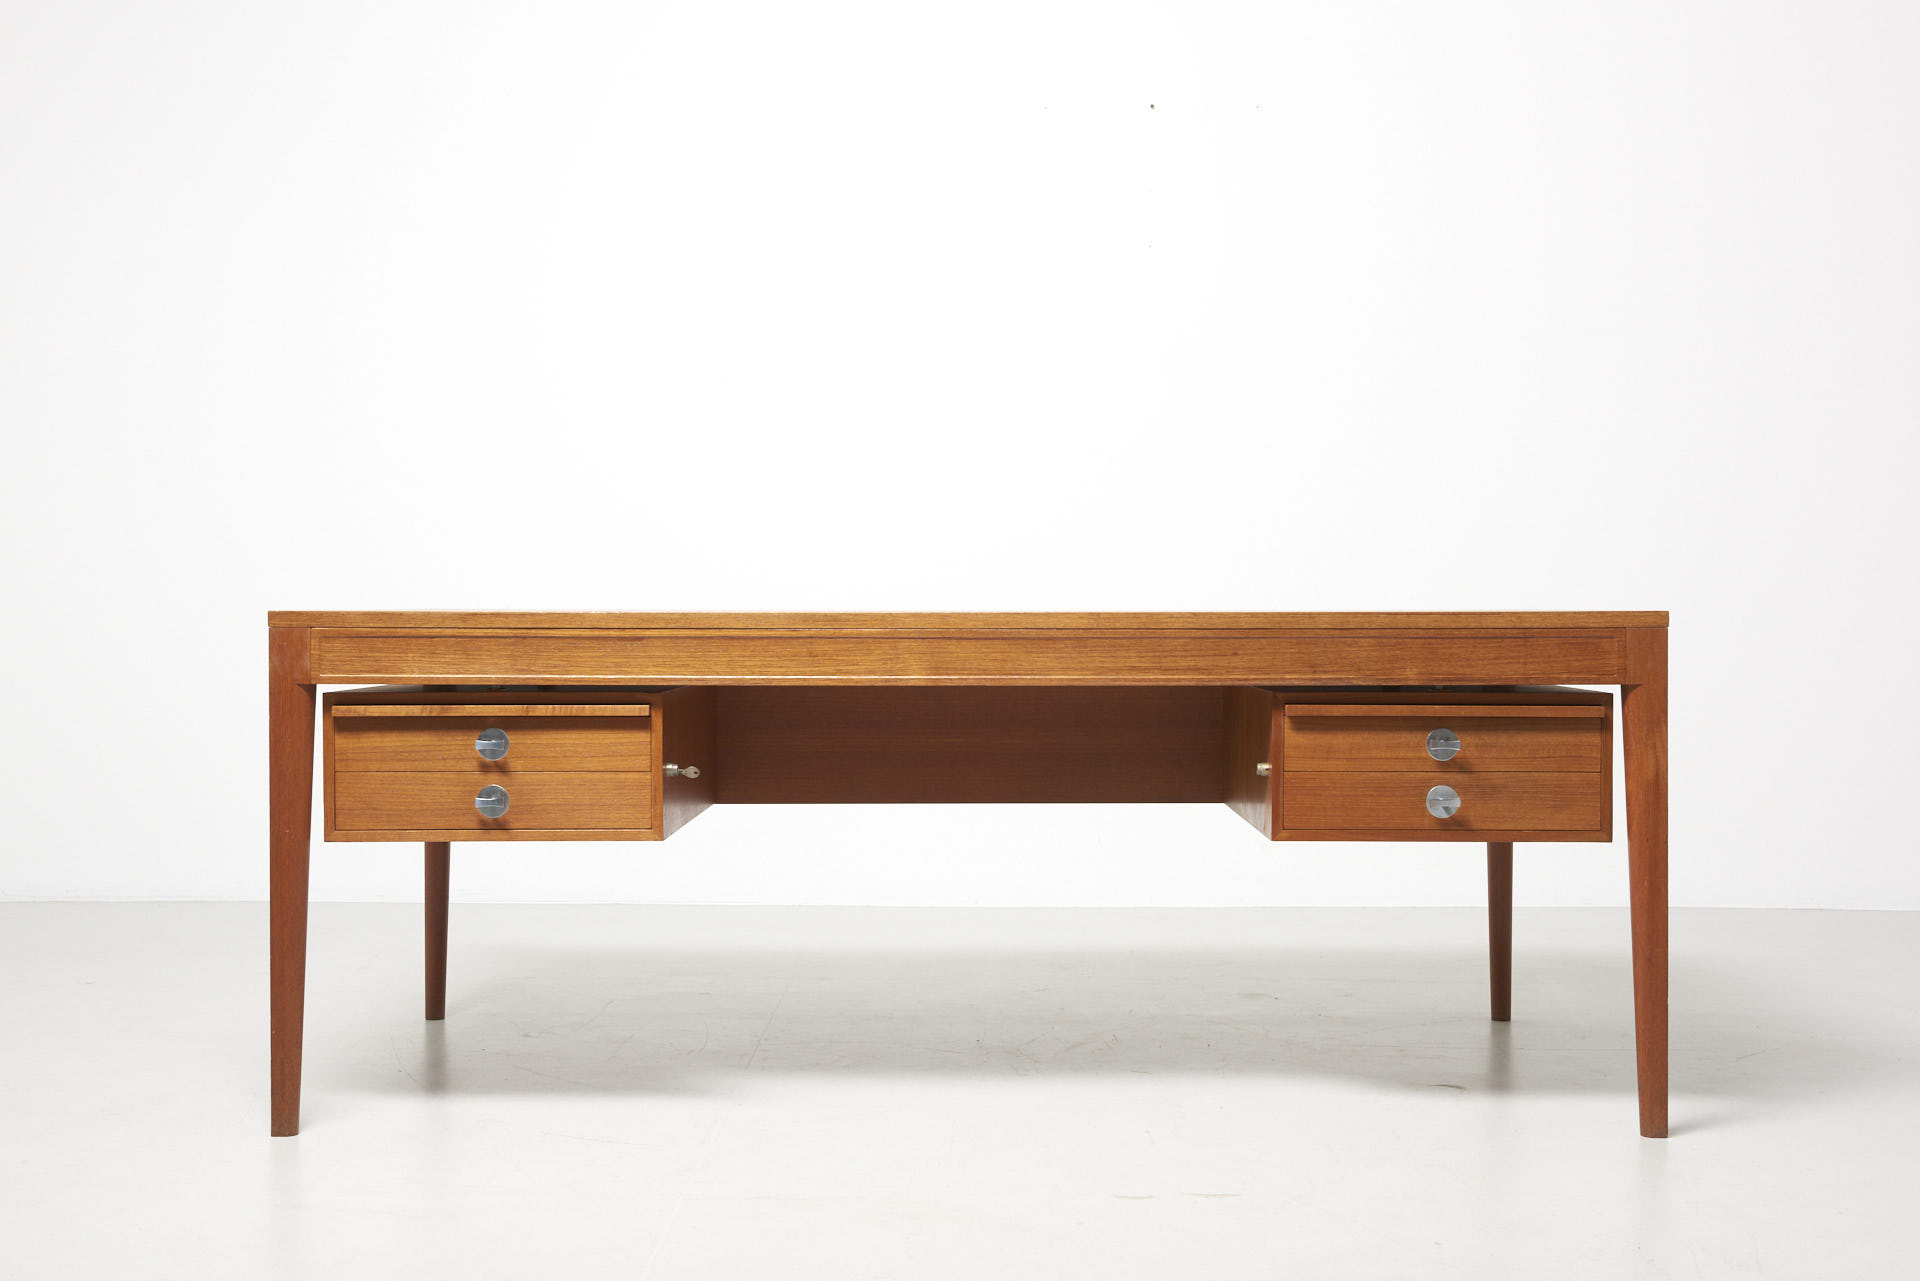 modestfurniture-vintage-2181-finn-juhl-diplomat-writing-desk02